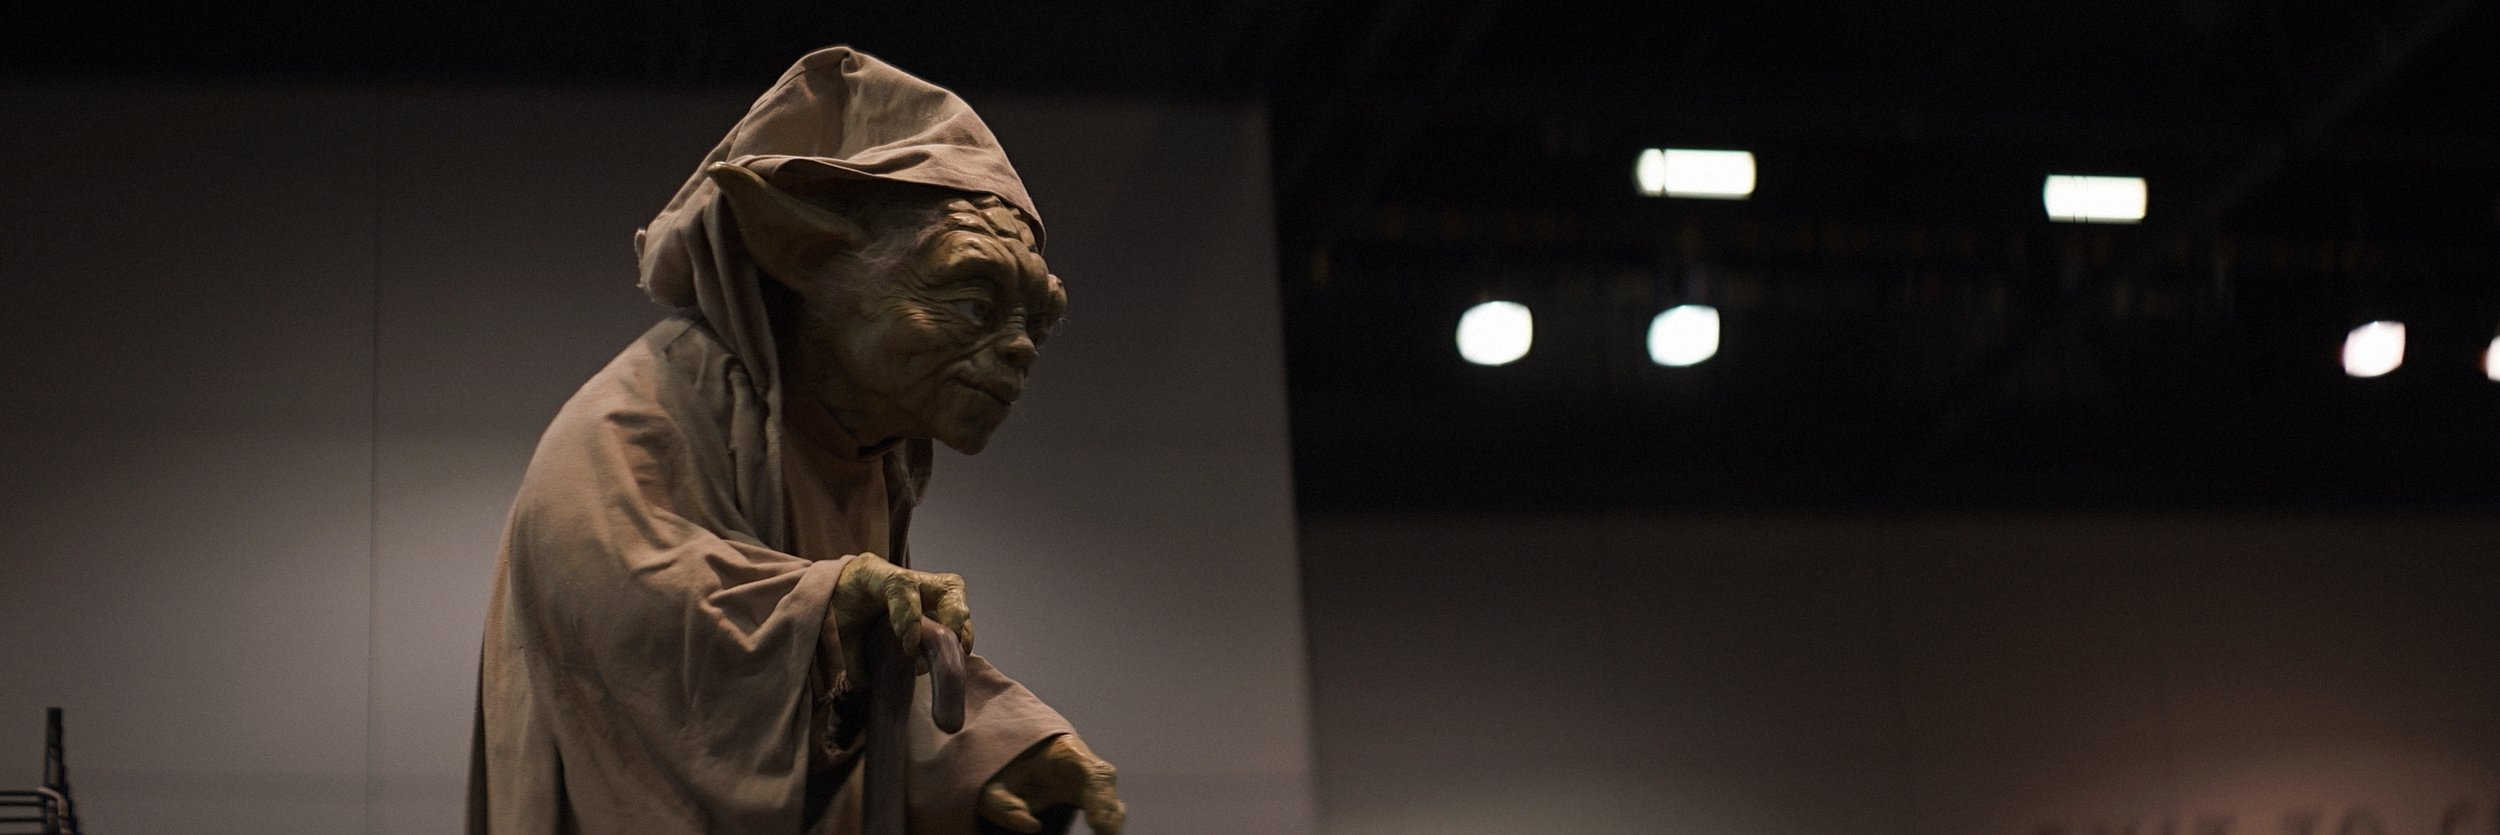 Lomo 75mm Anamorphic Lens | Star Wars Celebration Chicago - SWCC | Hermit Yoda is checking out the crowd. - Photo by: Keith Nickoson